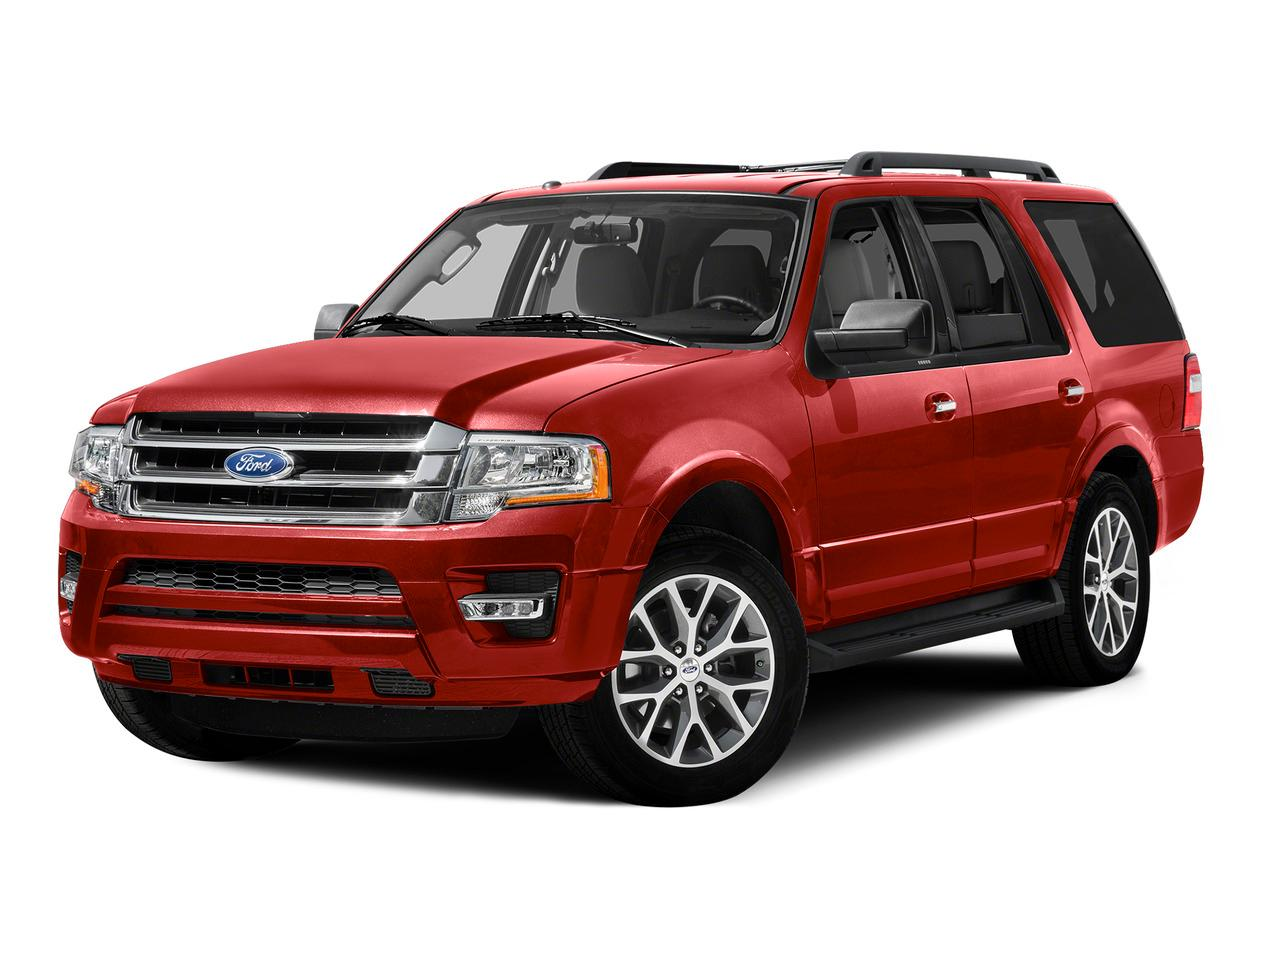 2015 Ford Expedition Vehicle Photo in Corpus Christi, TX 78411